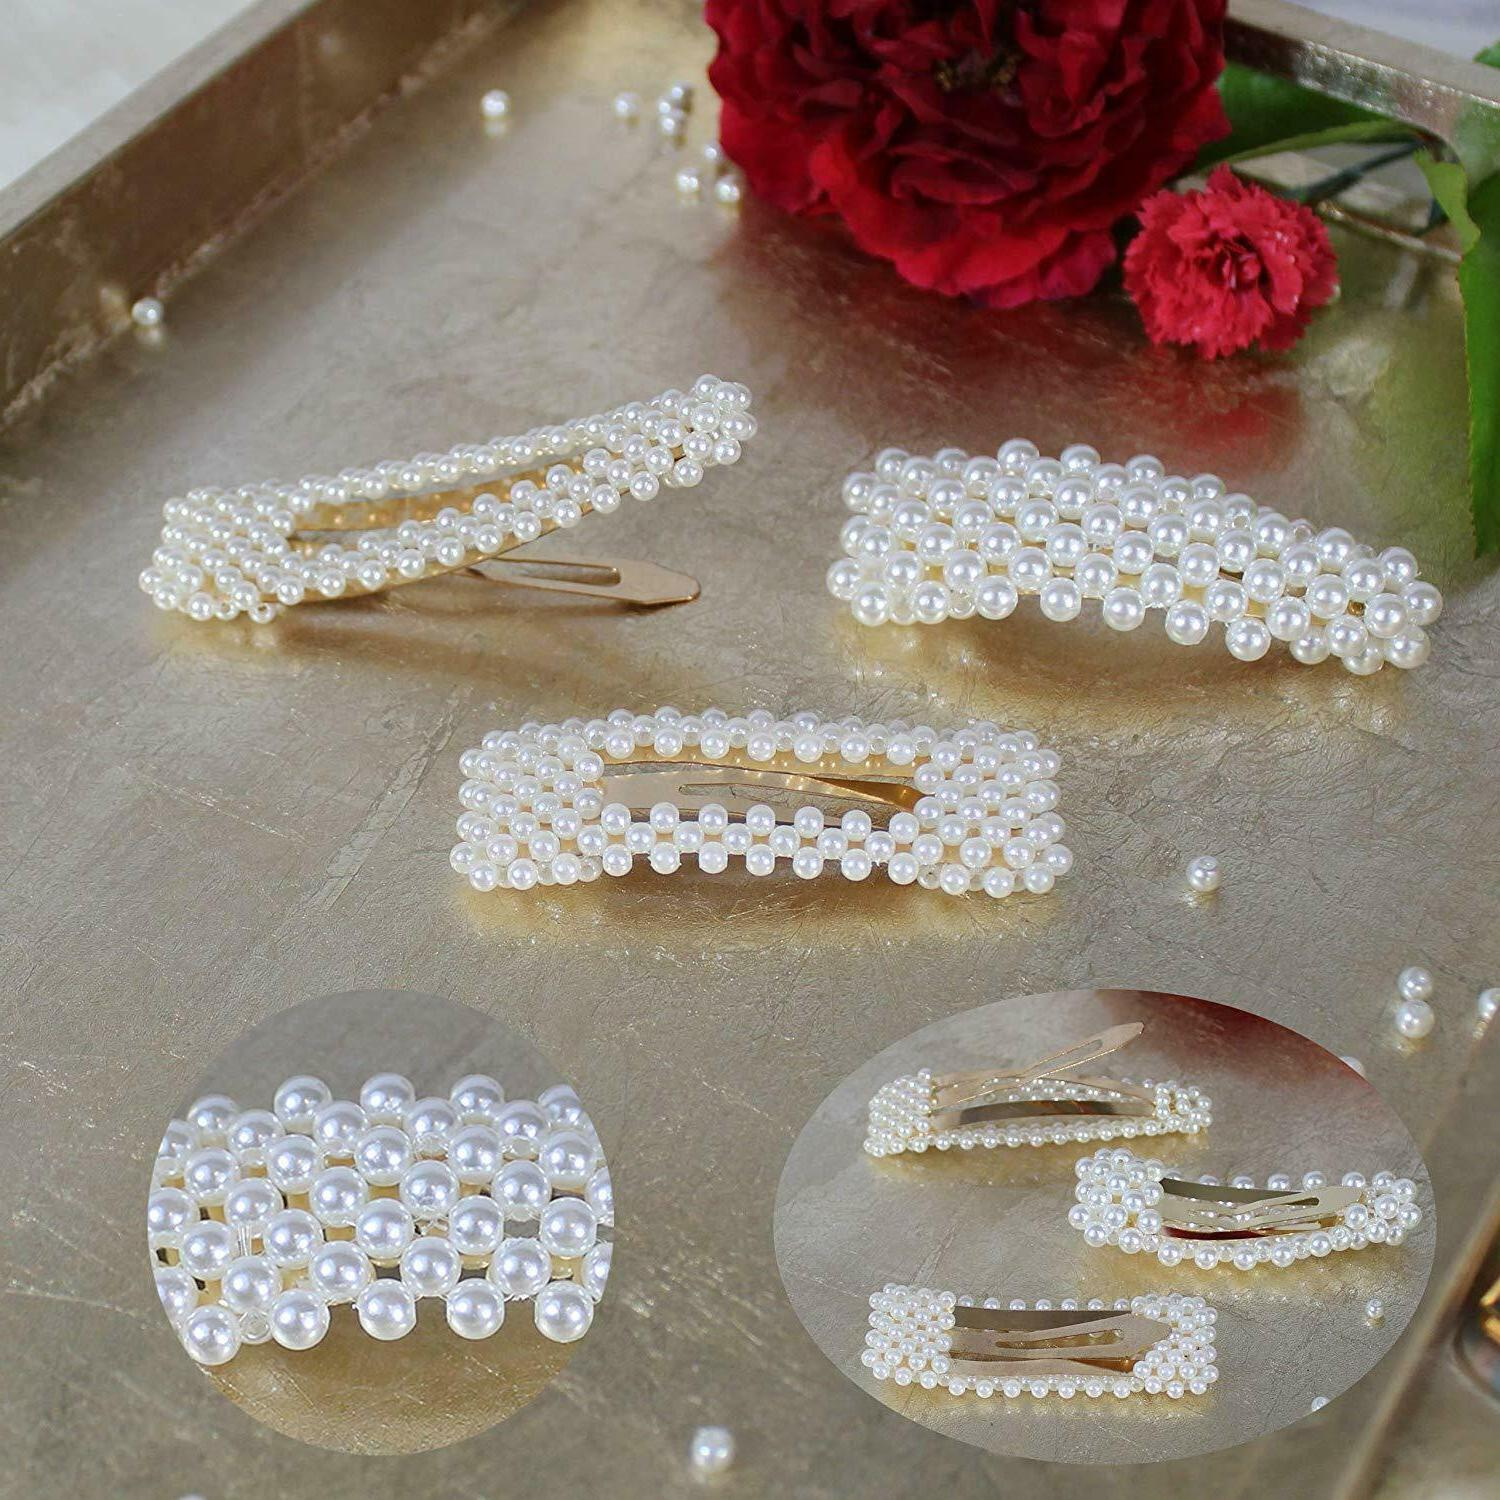 12 Pcs Hair Clips Clip for Woman Geometric Acrylic